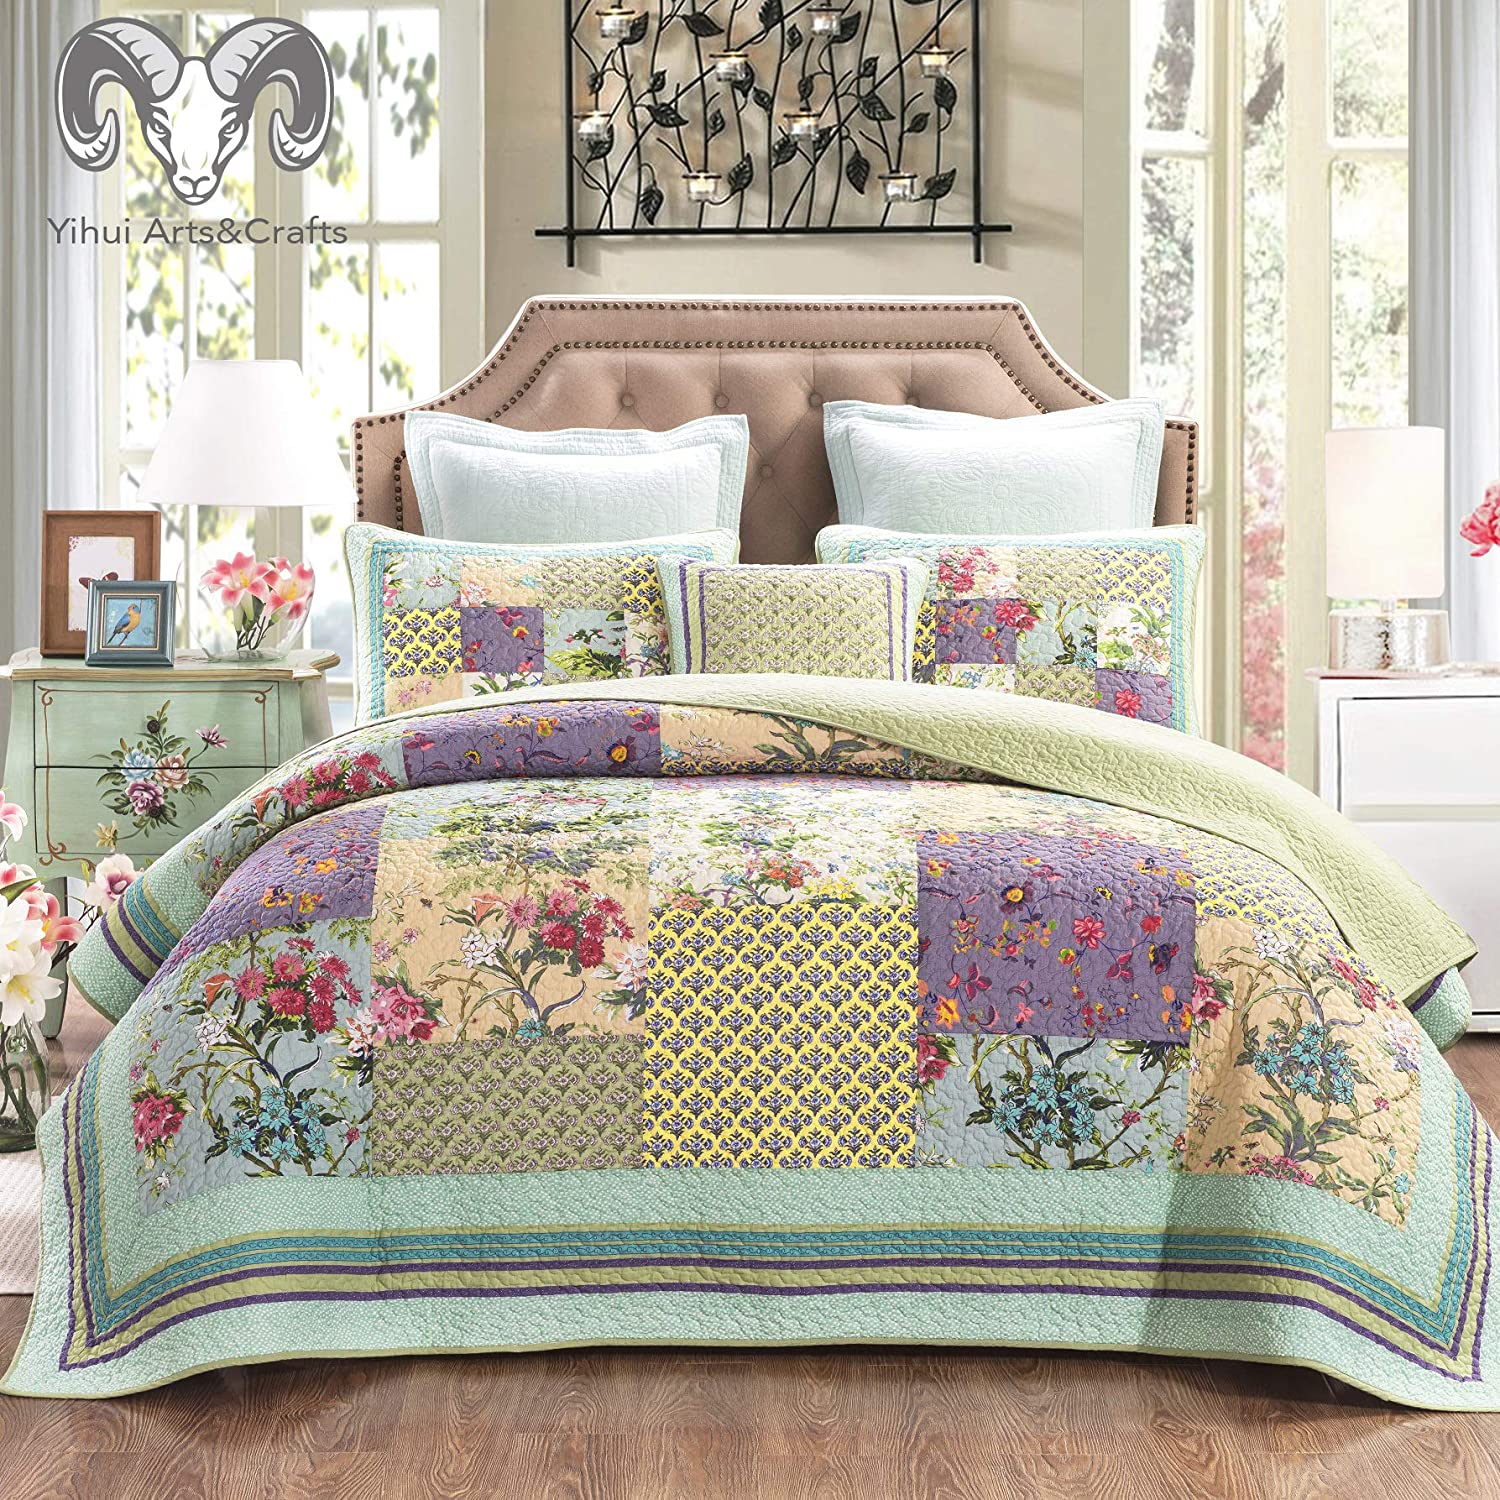 YAYIDAY Cotton Patchwork Bedspread Botanical Quilt Sets King Size - Reversible Breathable Comforter Floral Quilted Coverlet with Pillow Shams, Christmas Decor Bohemian Pattern Rural